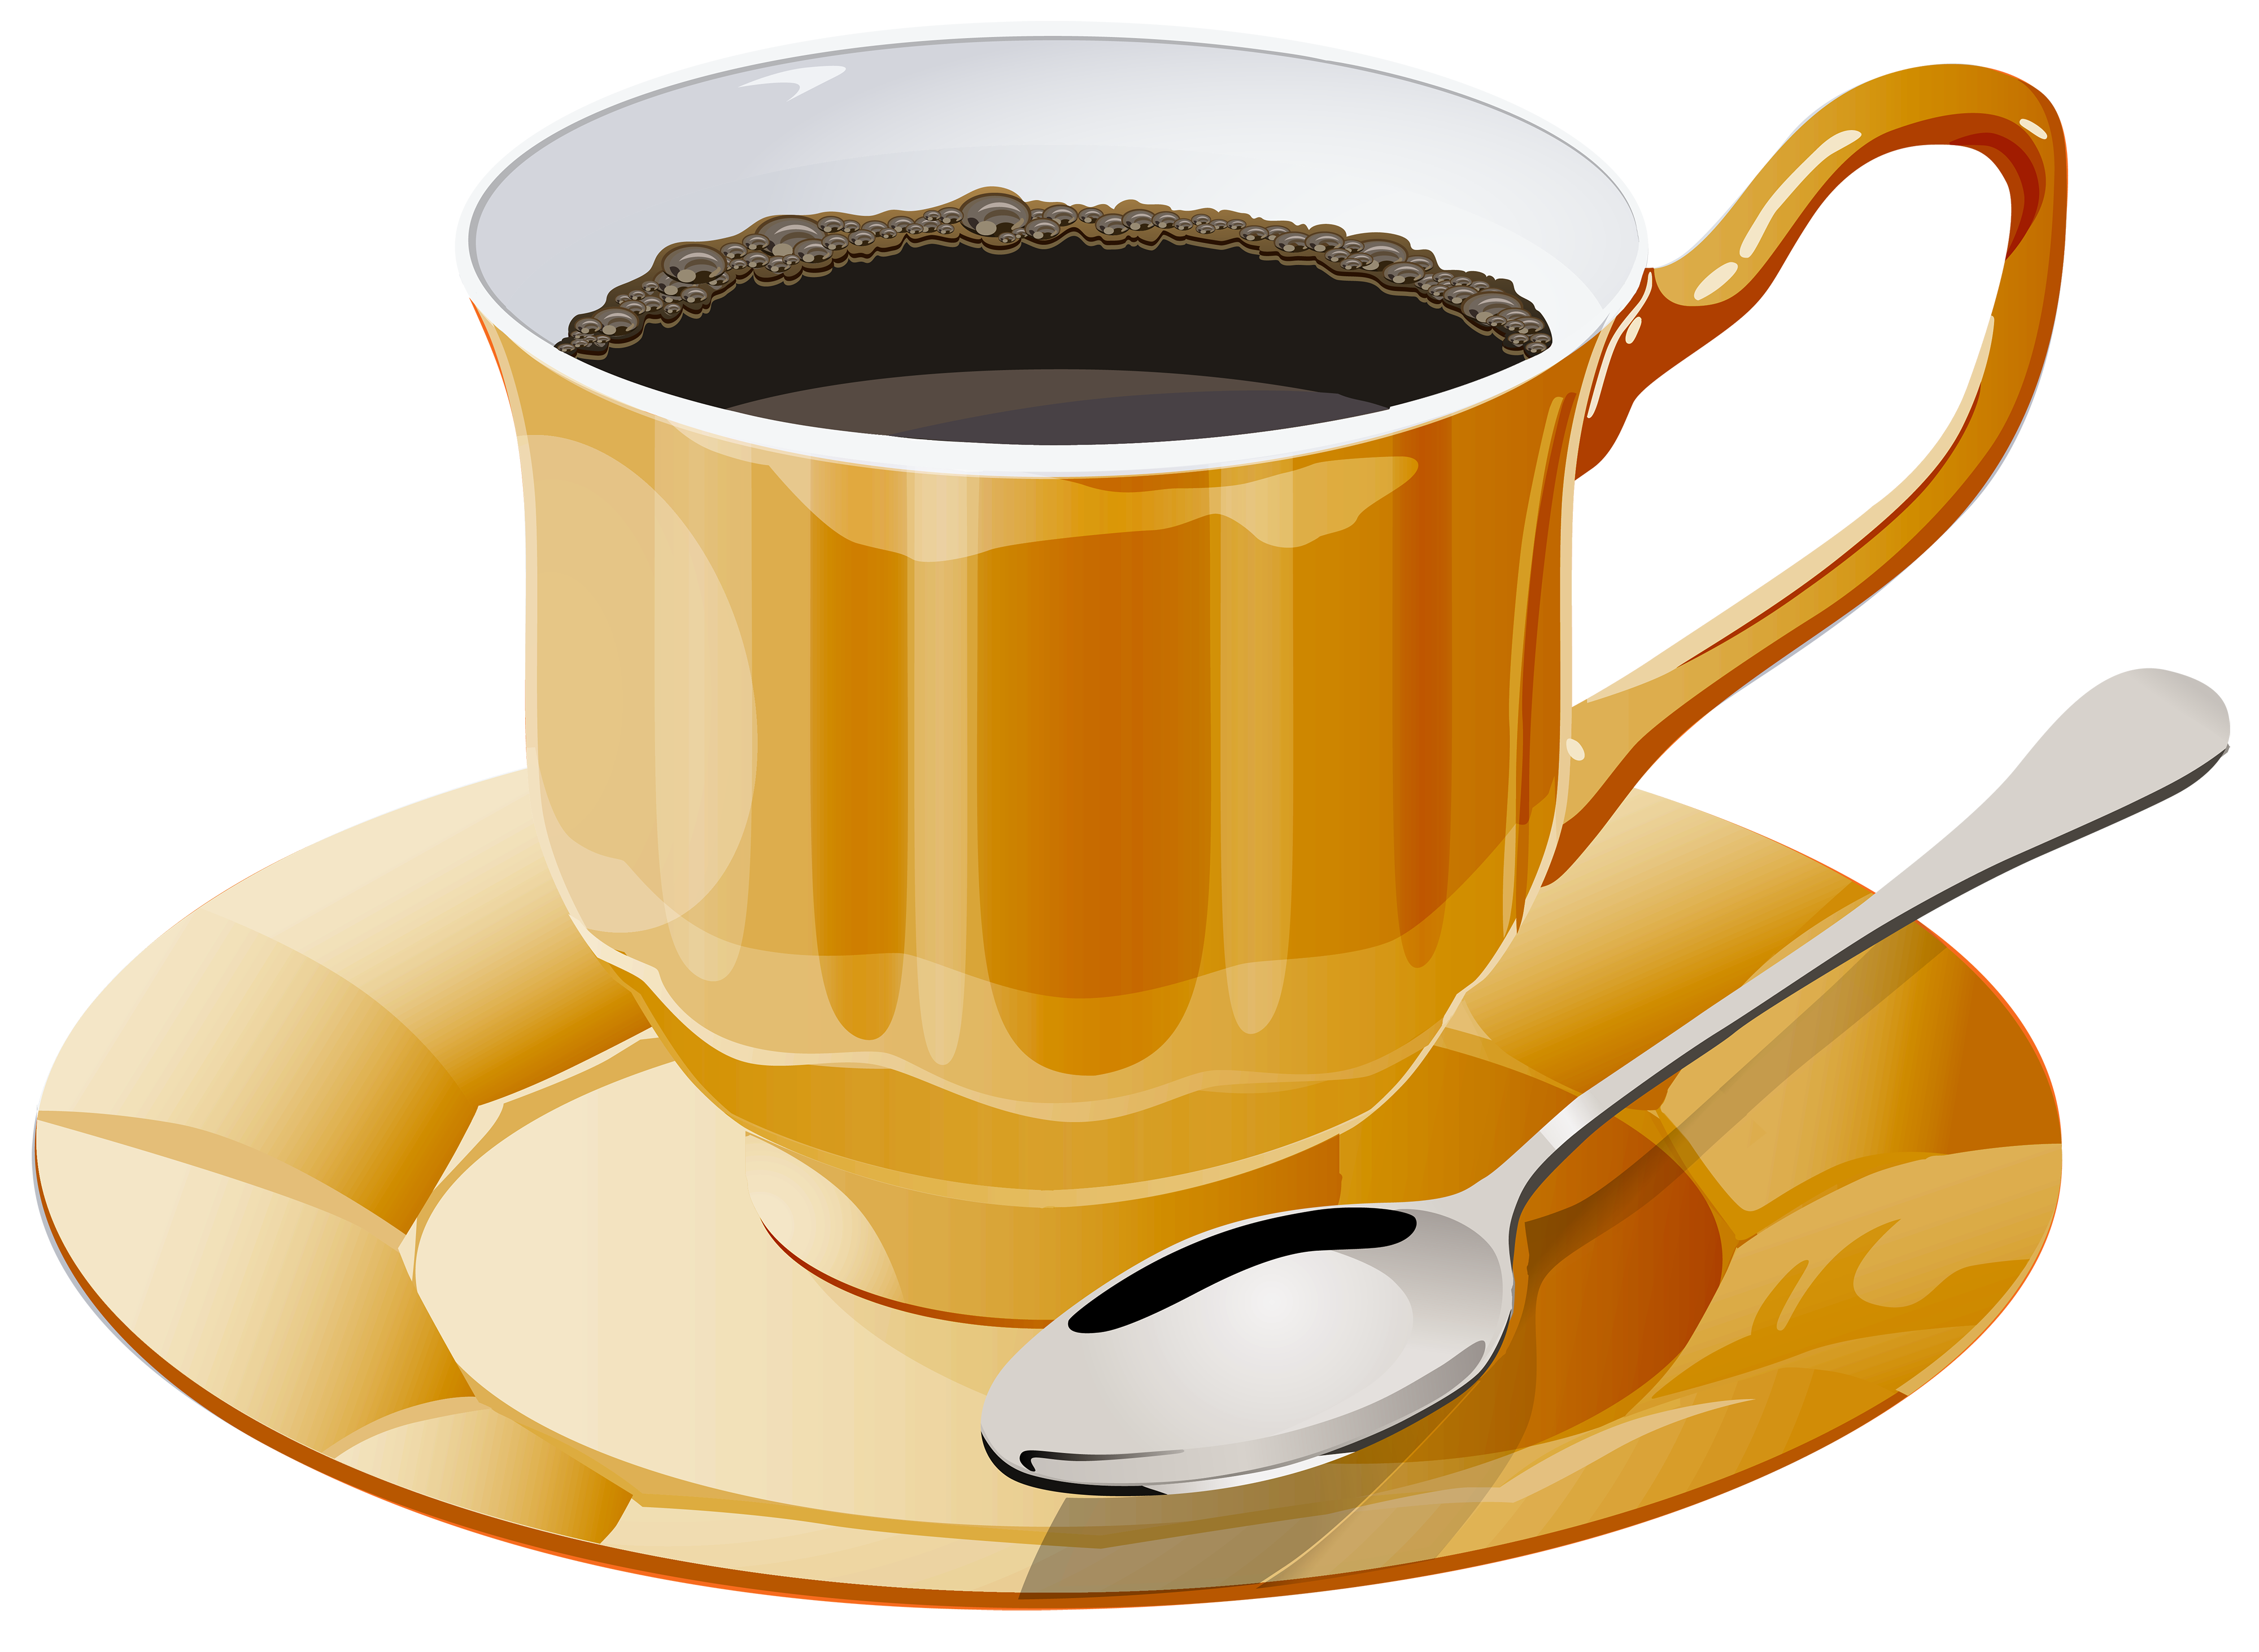 Poetry clipart reading cafe. Pretty transparent coffee png